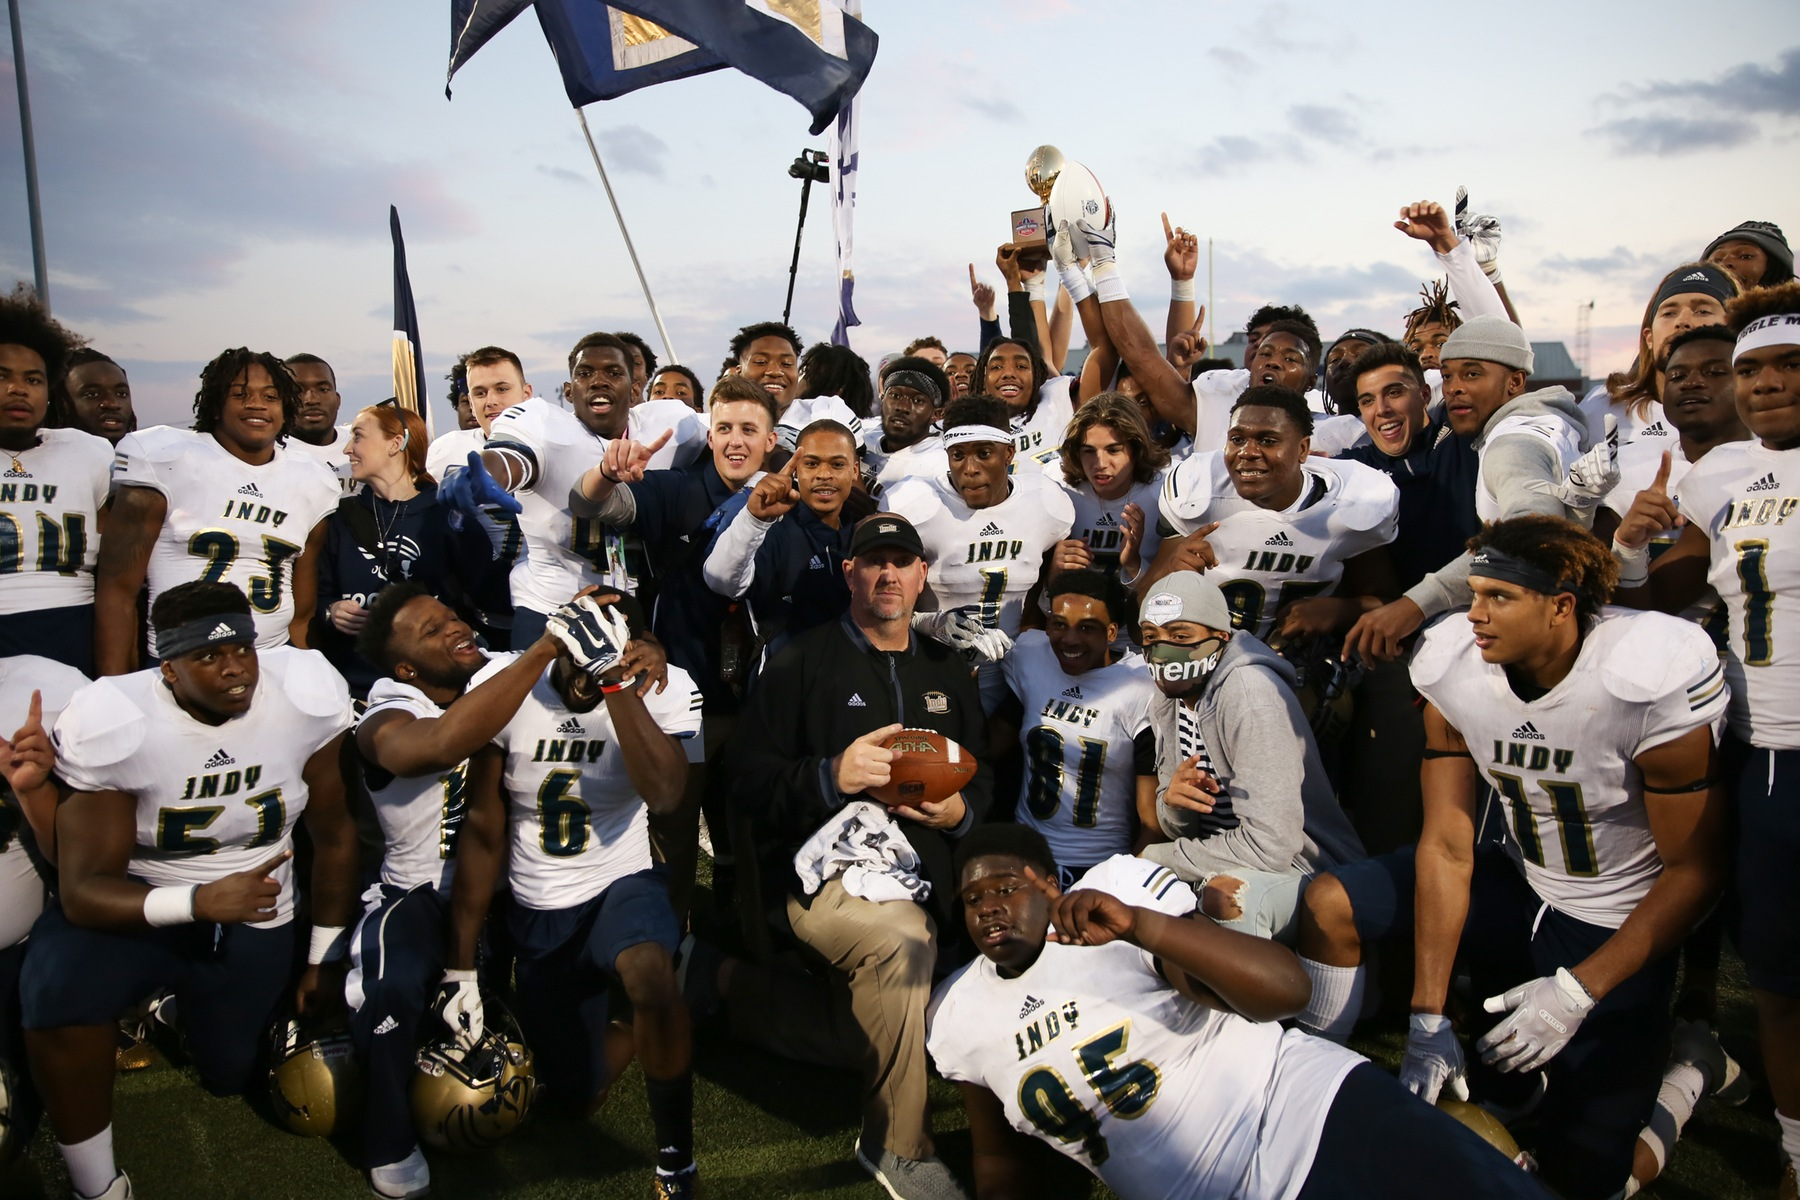 Pirates defeat Norseman, become first team in school history to take home bowl game trophy